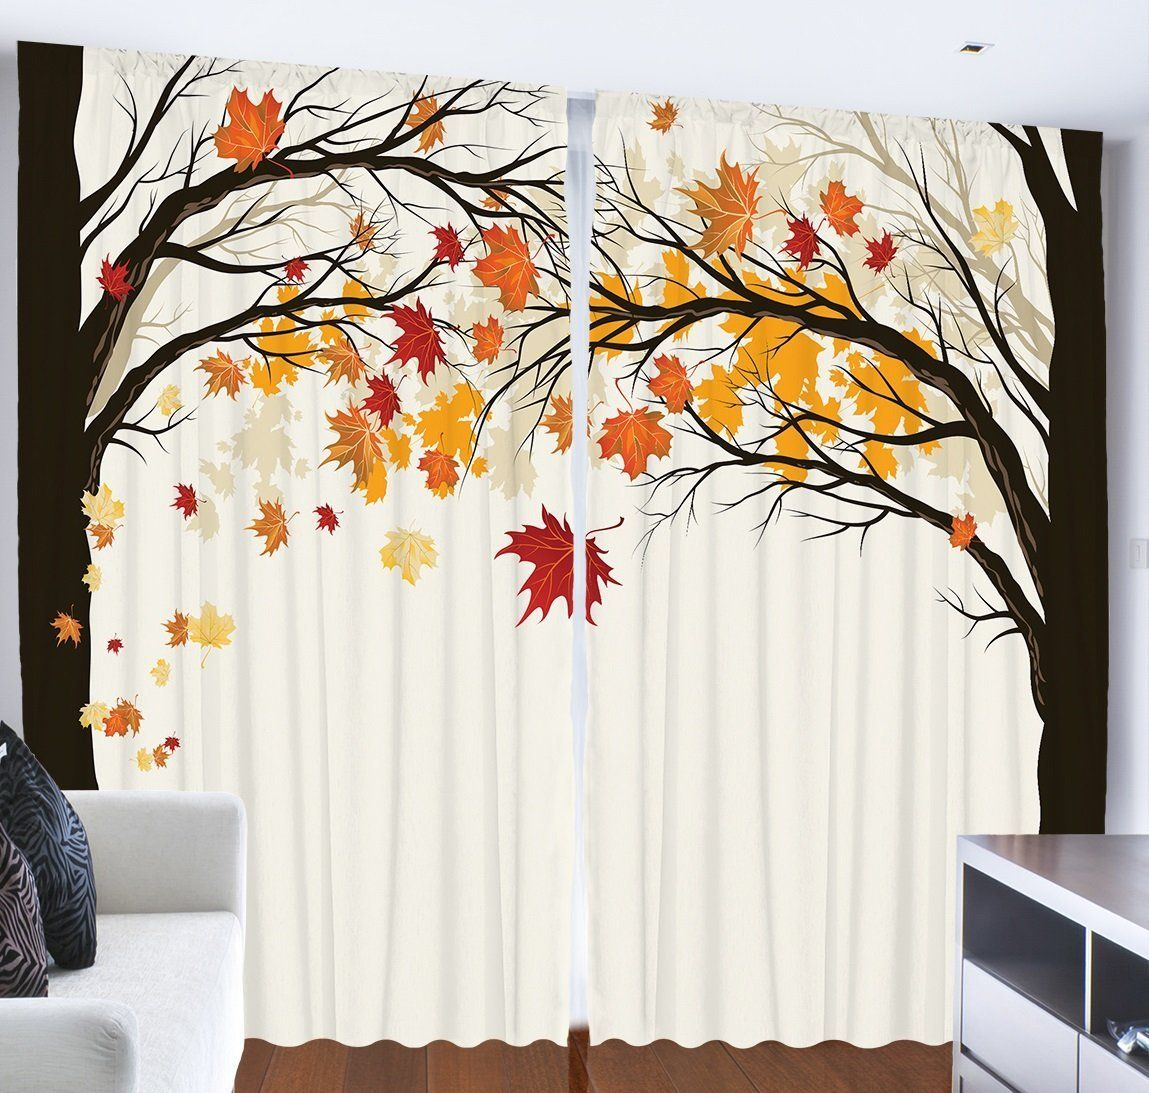 Amazon Com Curtains For Bedroom Decor Living Room Decorations Art Nature Fall Trees Falling Leaves Pic Curtains Living Room Curtains Bedroom Living Room Decor #pattern #curtains #for #living #room